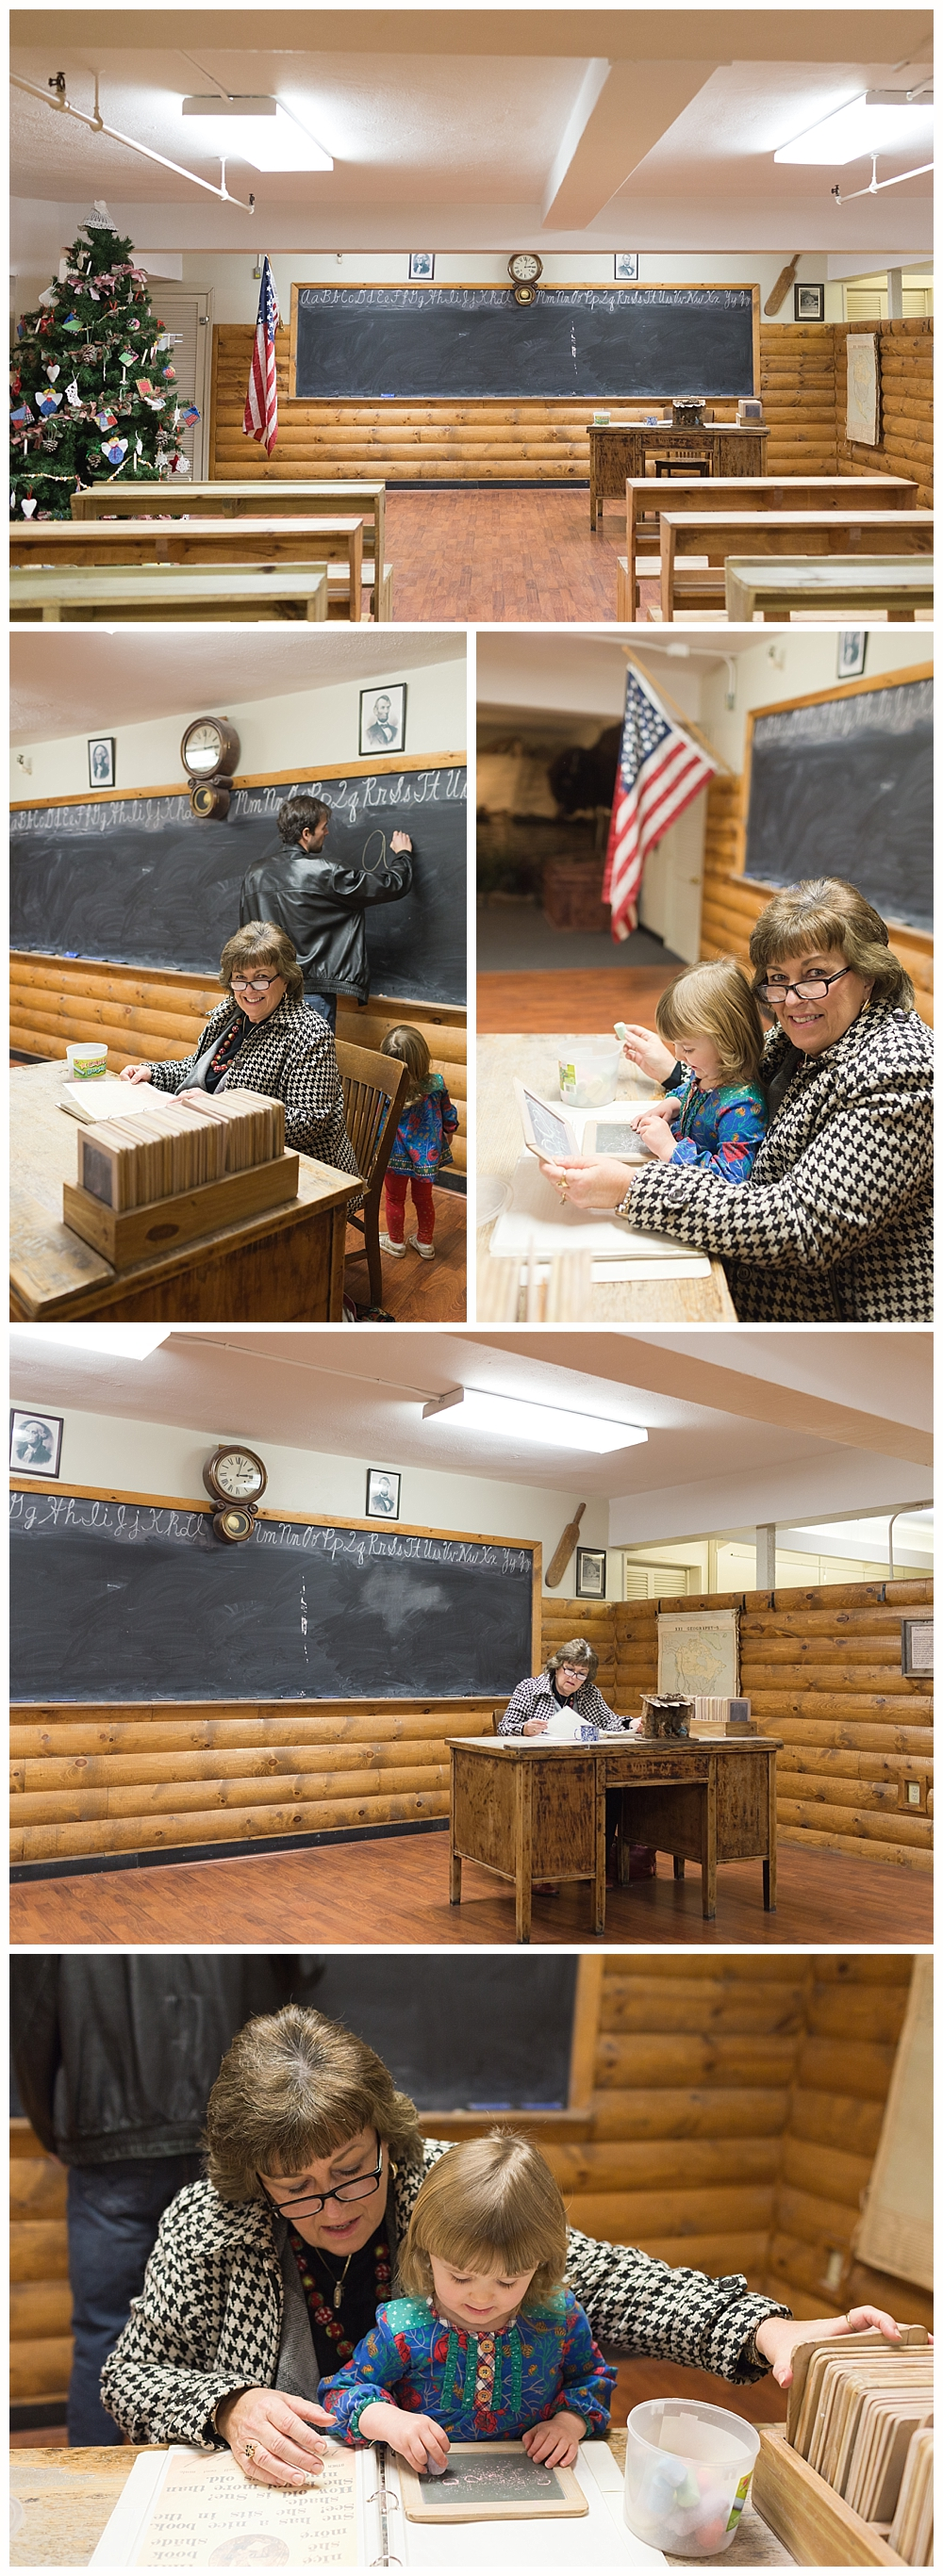 old classroom at Kentucky Highlands Museum in Ashland, KY